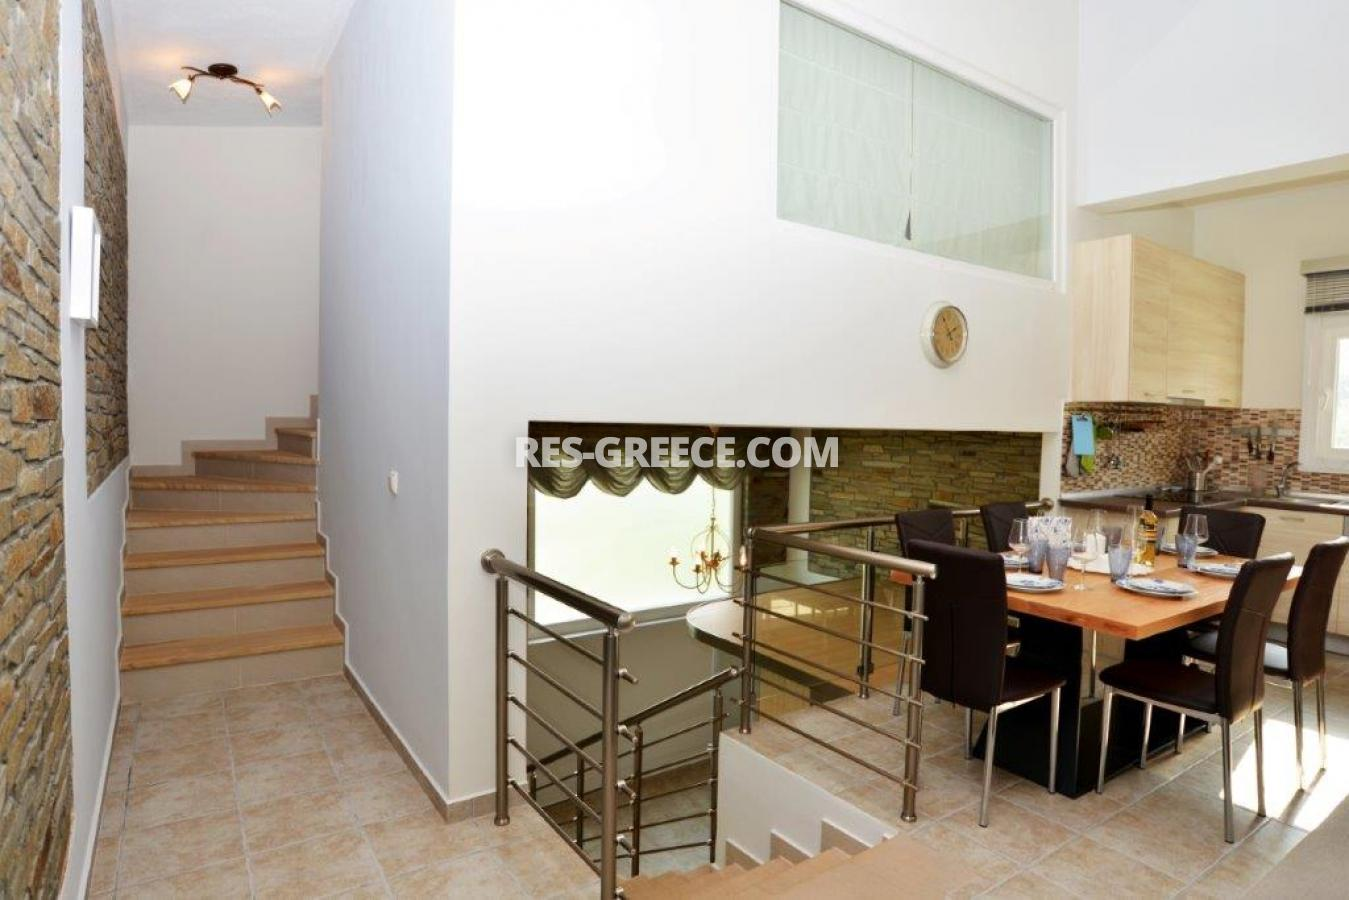 Arhondula Villa 3, Northern Aegean Islands, Greece - ready beachfront complex for rent on Thassos island with EOT licences - Photo 11